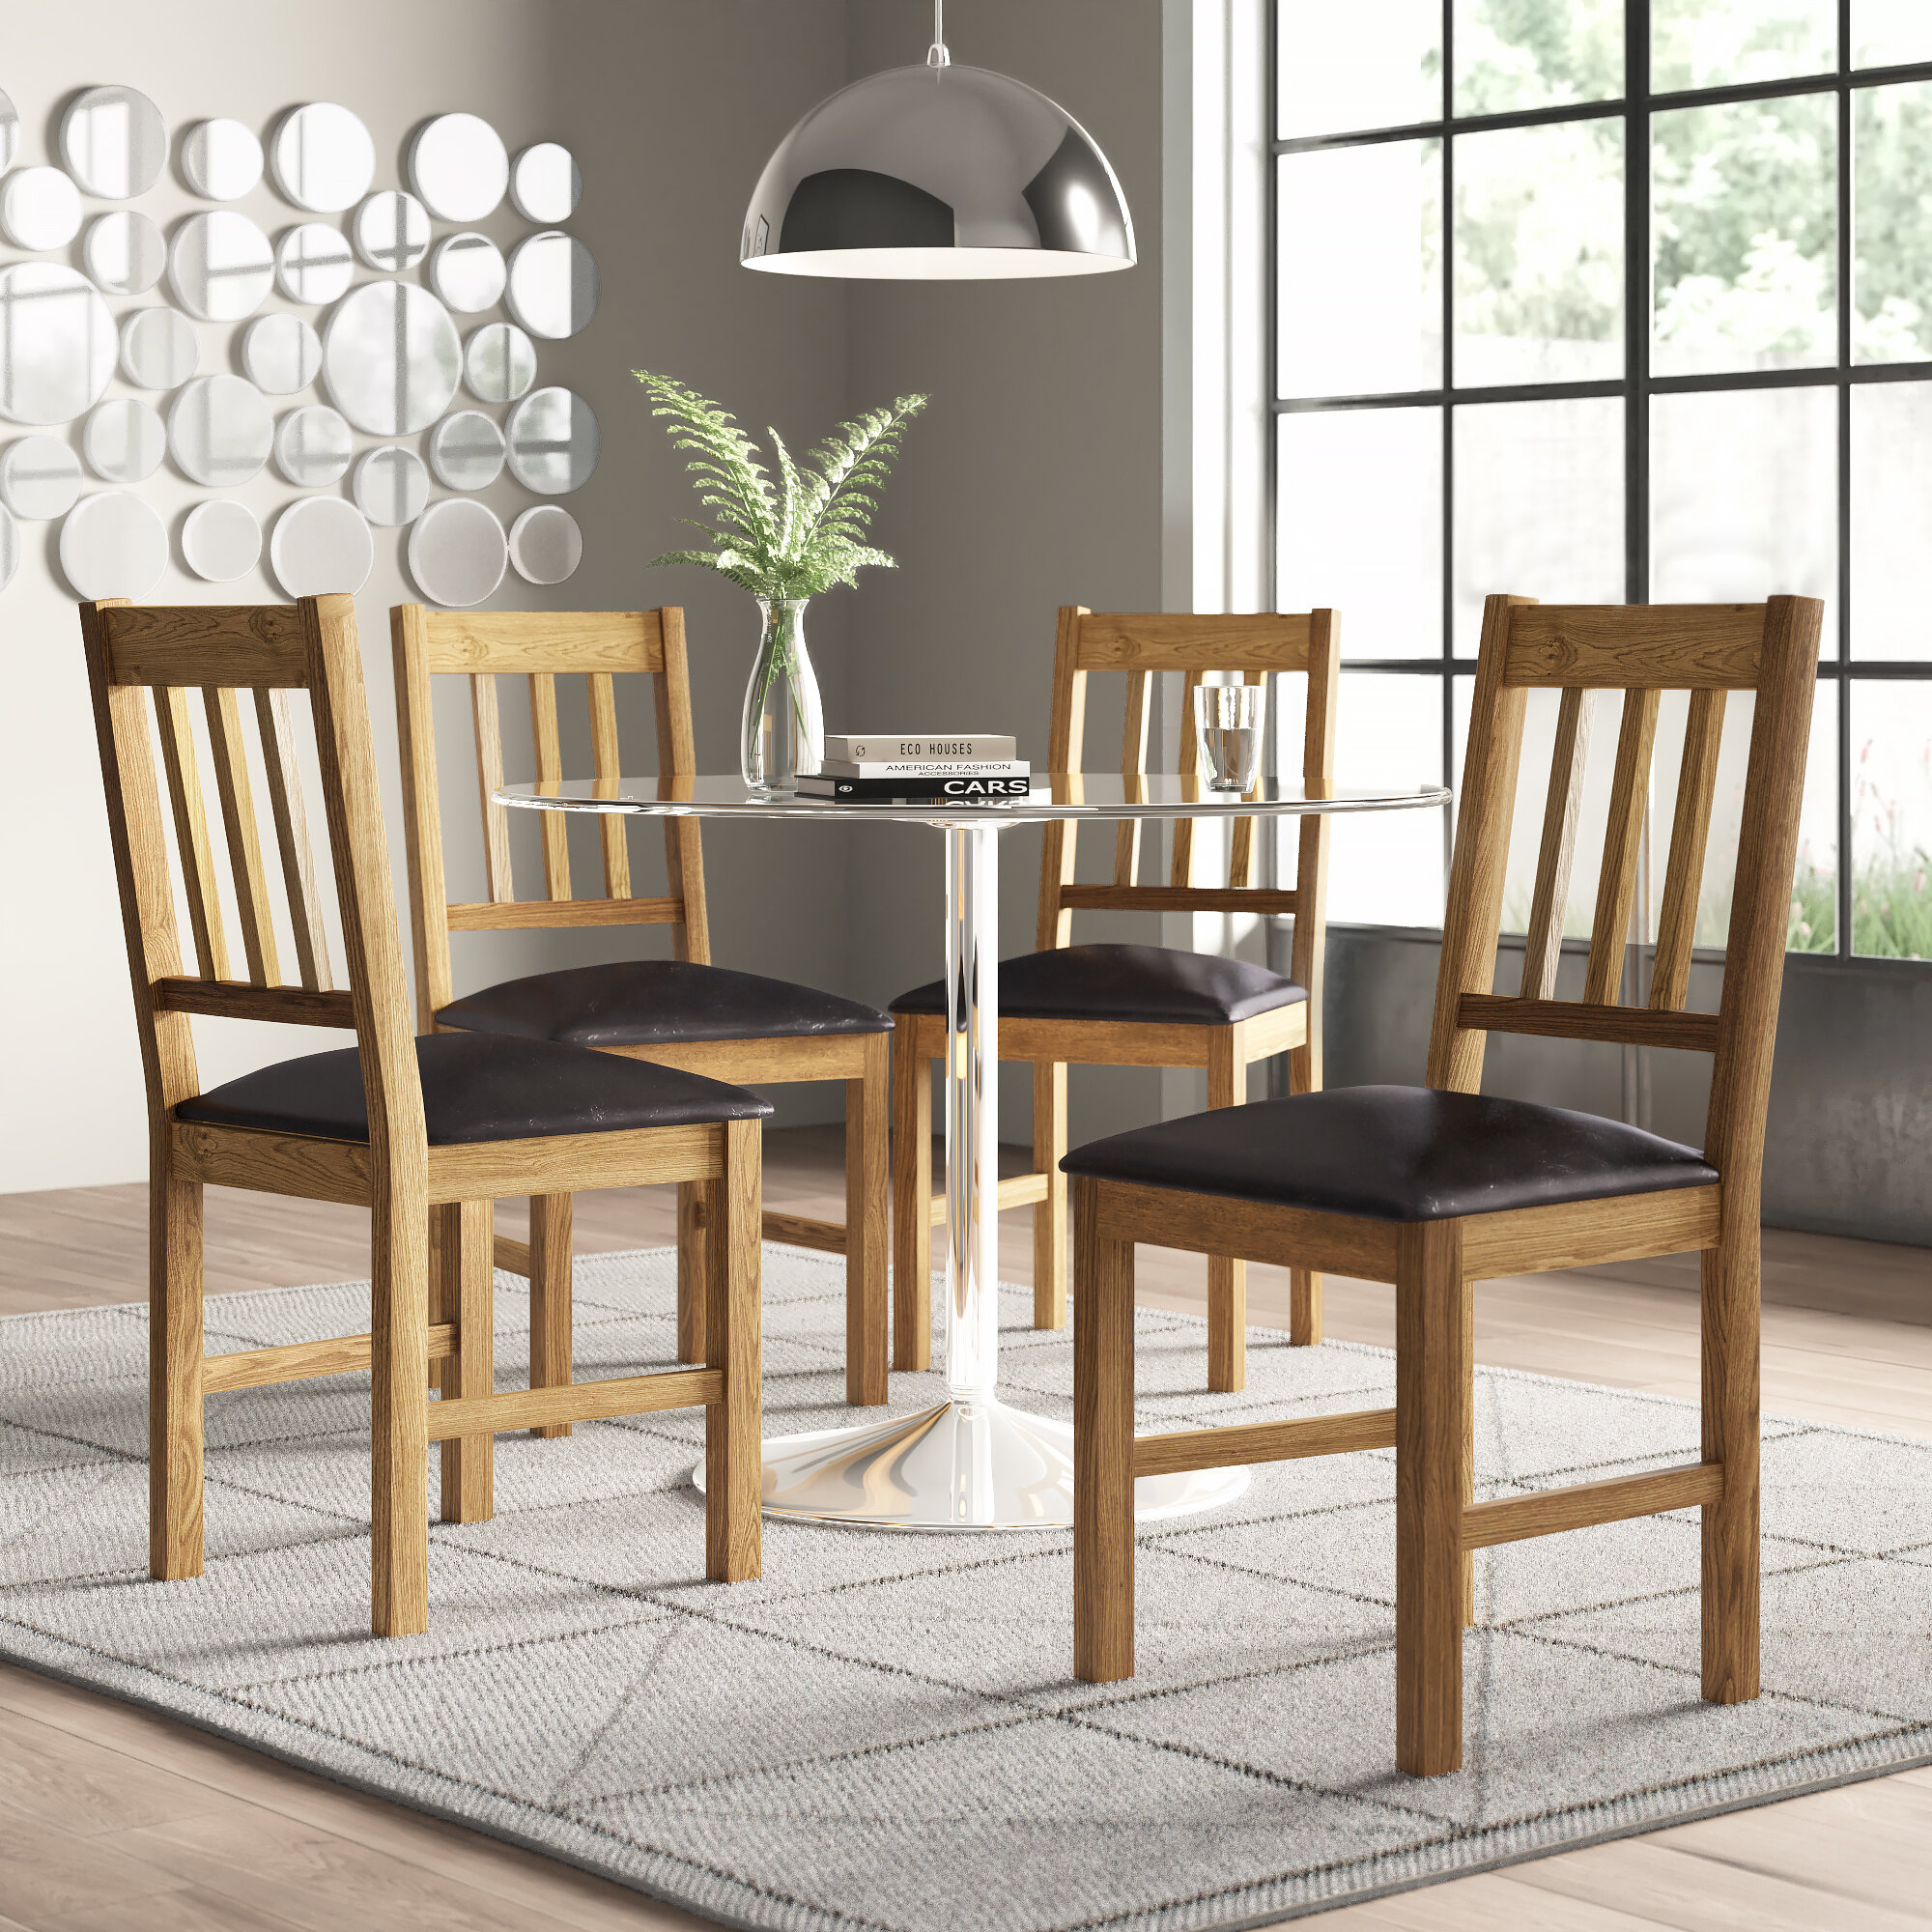 Union Rustic Alessandra Solid Wood Dining Chair Reviews Wayfair Co Uk